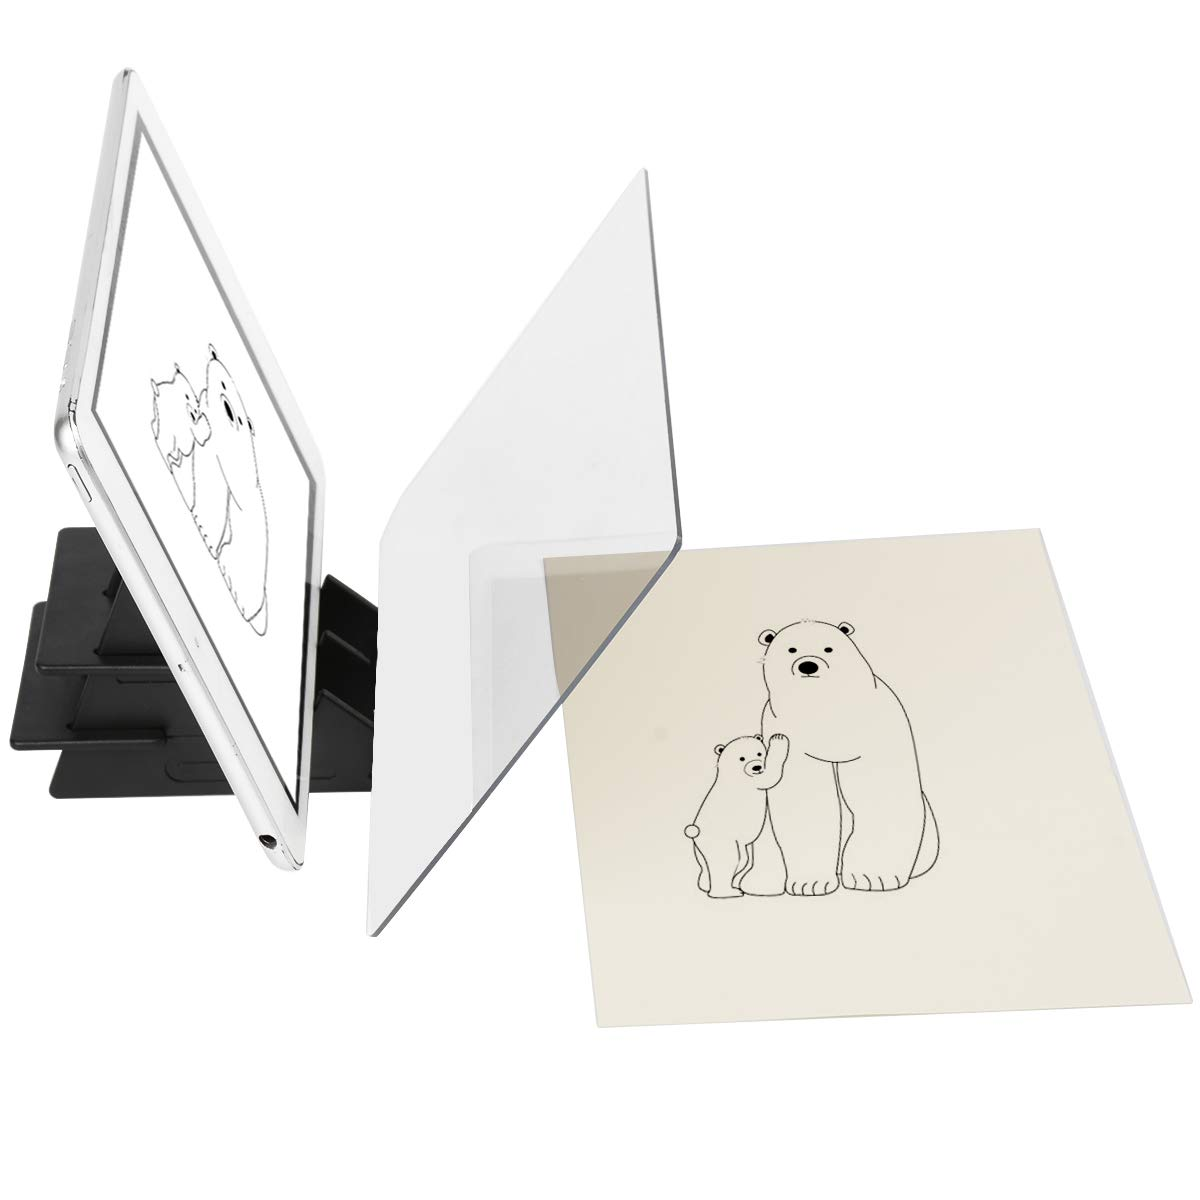 Yuntec optical drawing board sketch wizard easy tracing drawing sketching tool sketch drawing board optical picture book painting artifact sketching